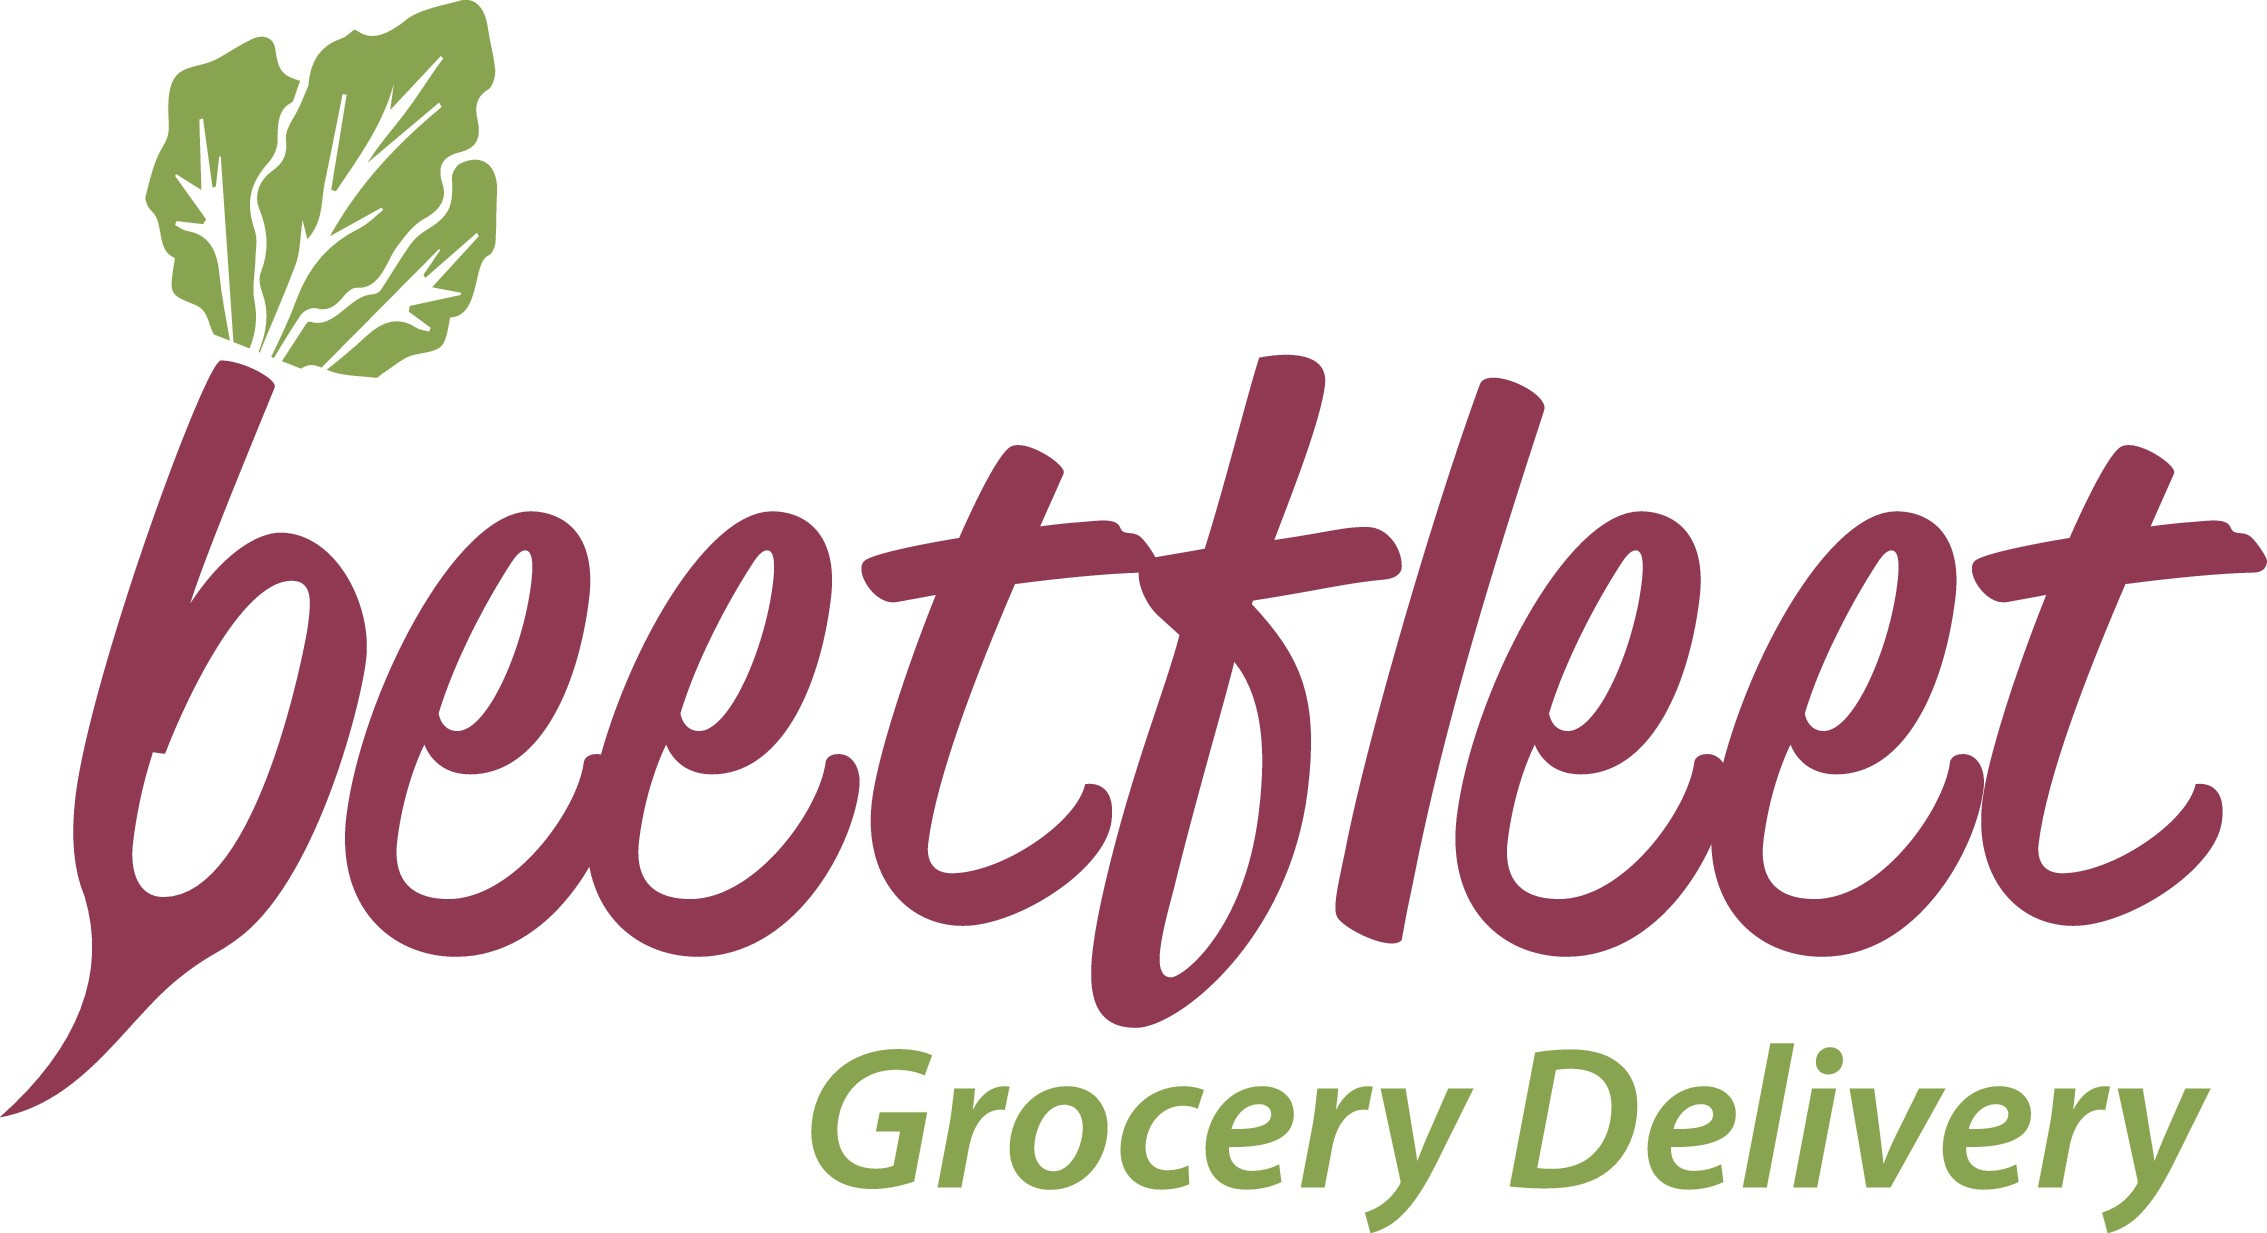 Create a Grocery Delivery Logo for Charleston SC